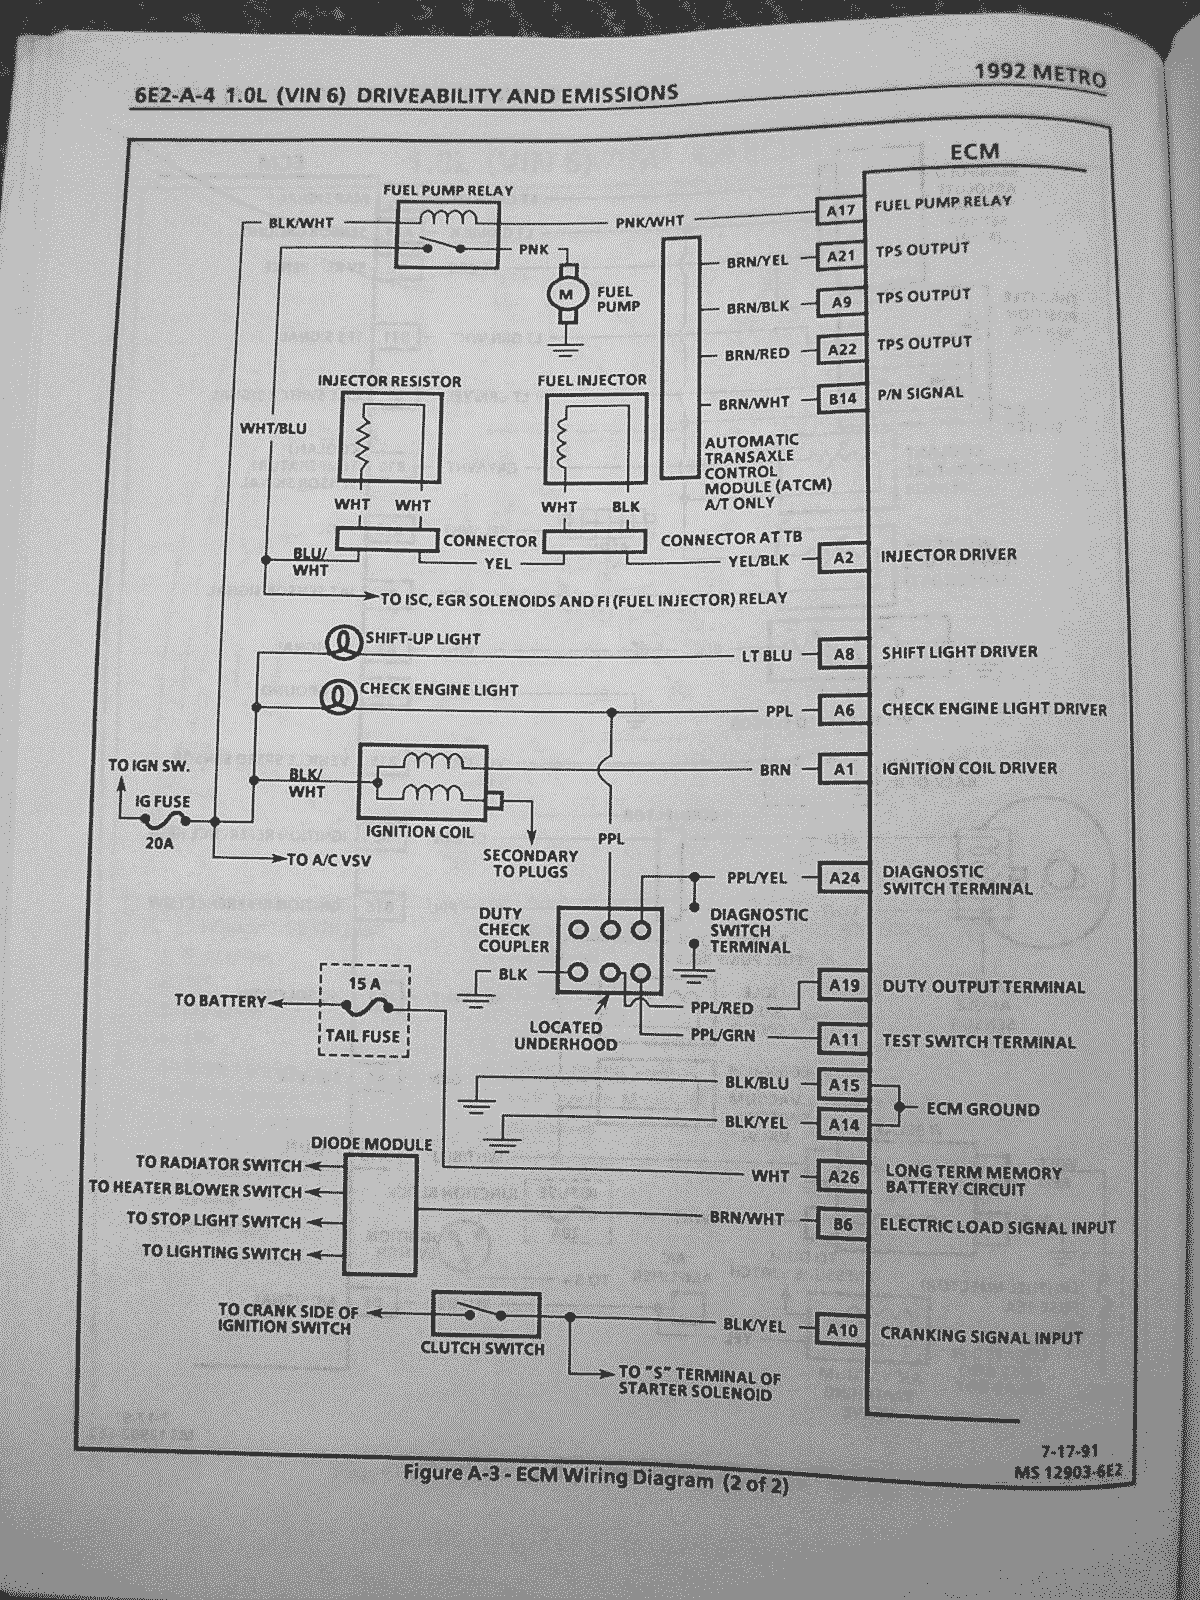 6e2 a 4 geo metro and suzuki swift wiring diagrams metroxfi com 1991 geo metro headlight wiring diagram at readyjetset.co